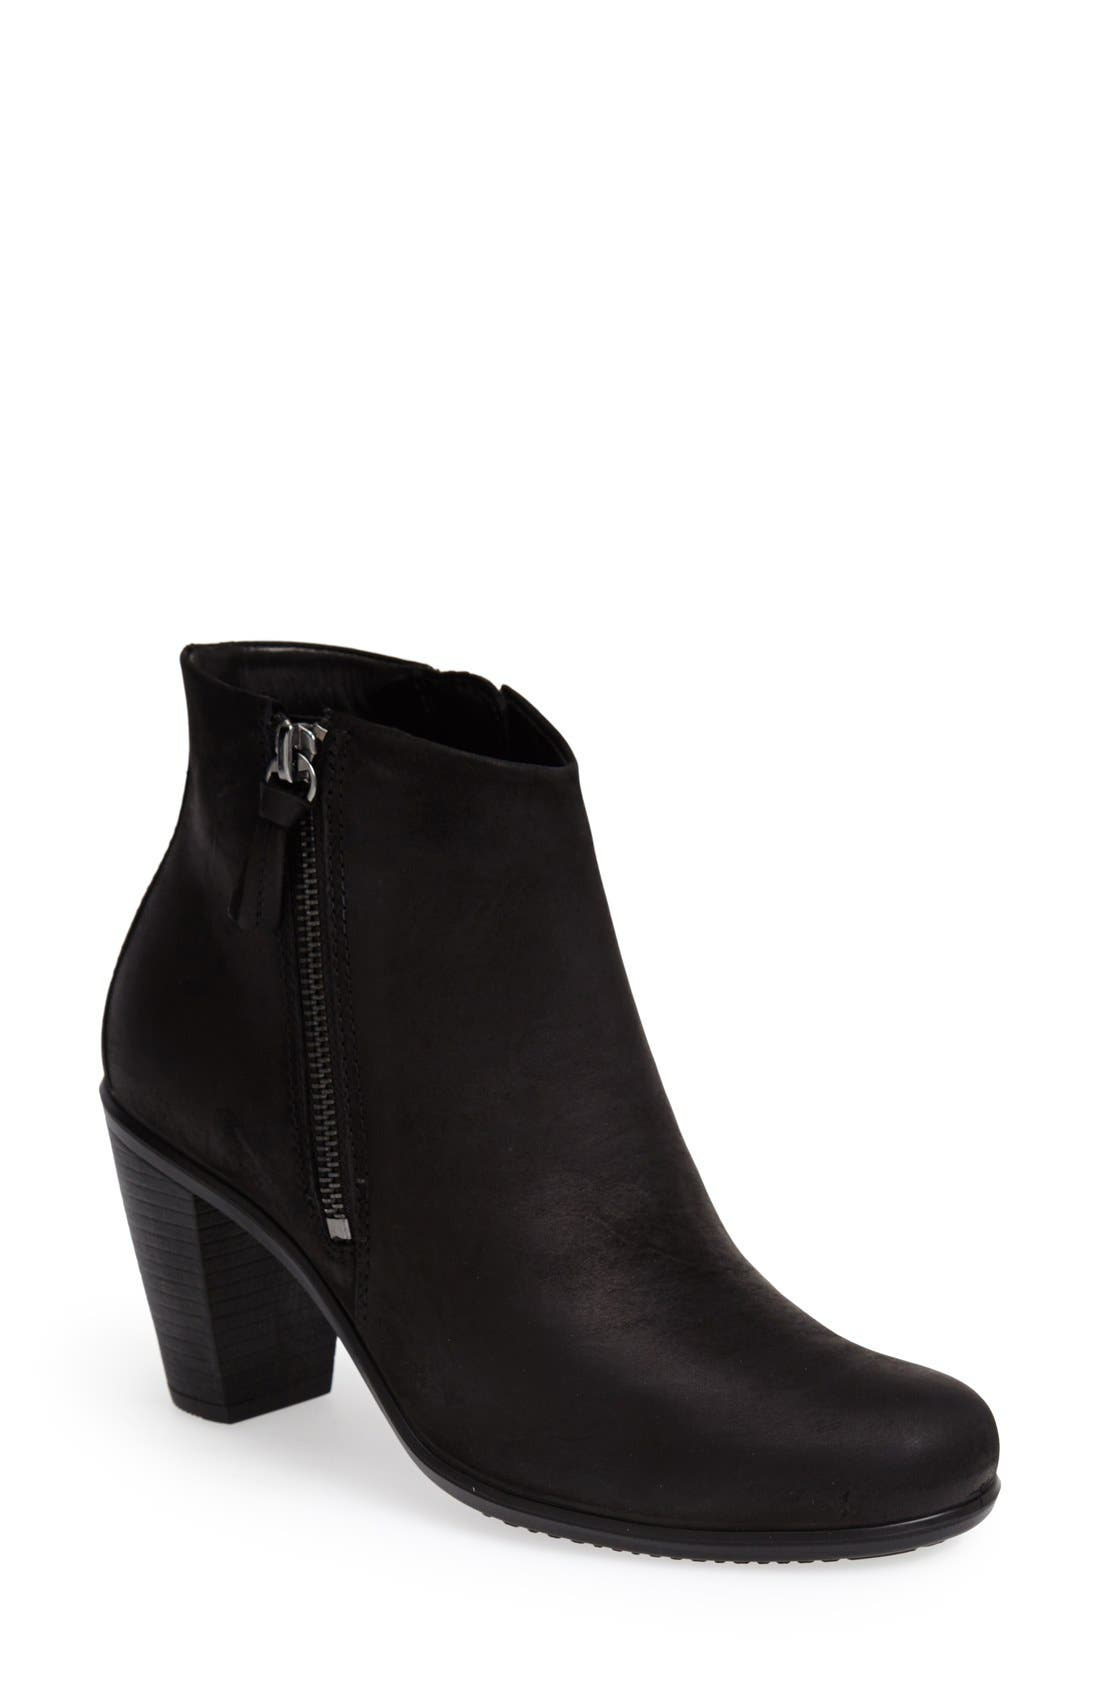 Alternate Image 1 Selected - ECCO 'Touch 75' Ankle Bootie (Women)